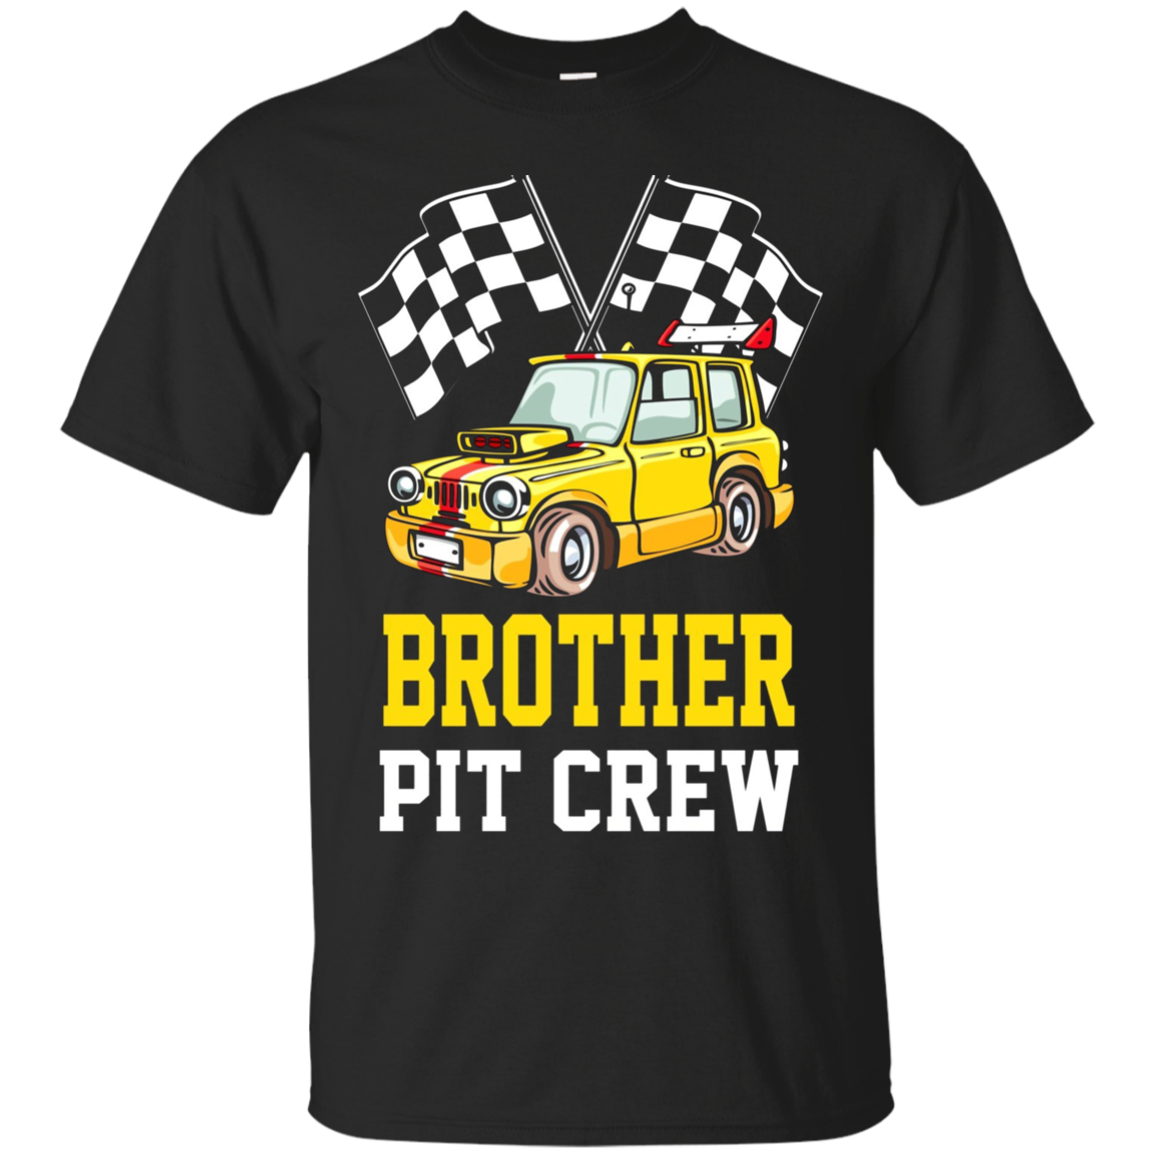 Pit Crew BROTHER Back Print Long Sleeve T-Shirt Racecar Gift